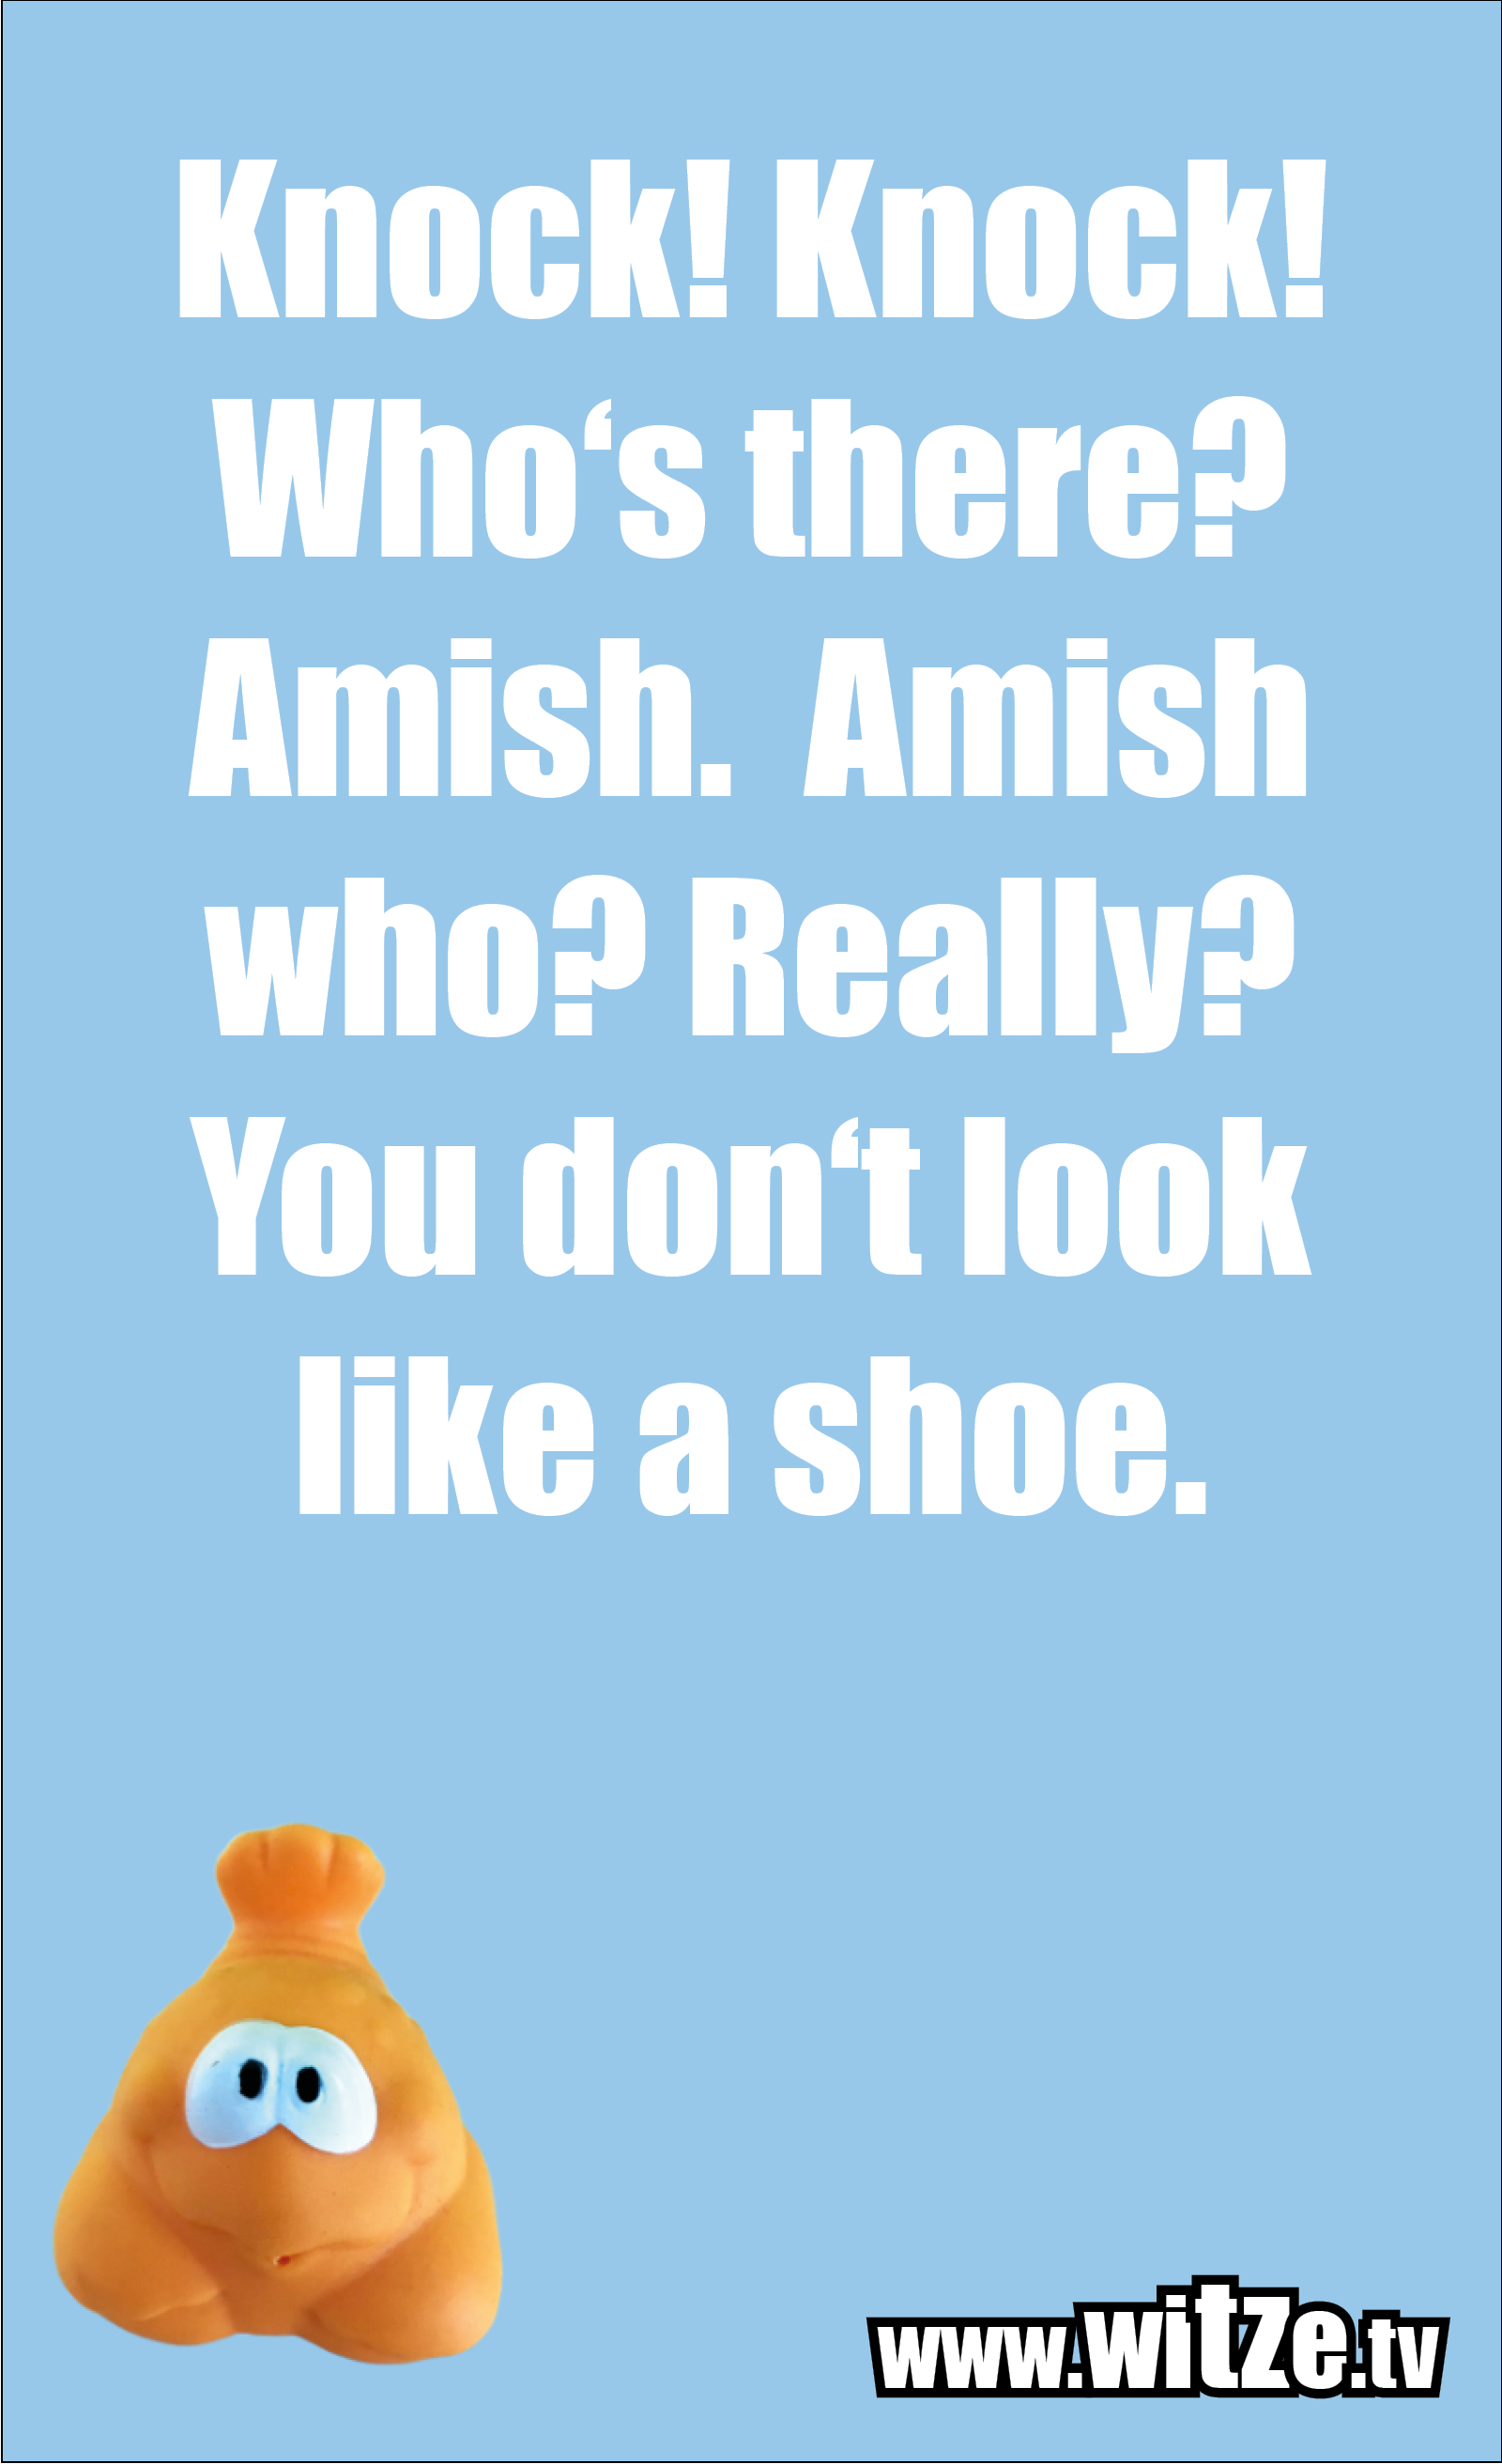 Knock! Knock! Who's there? Amish…